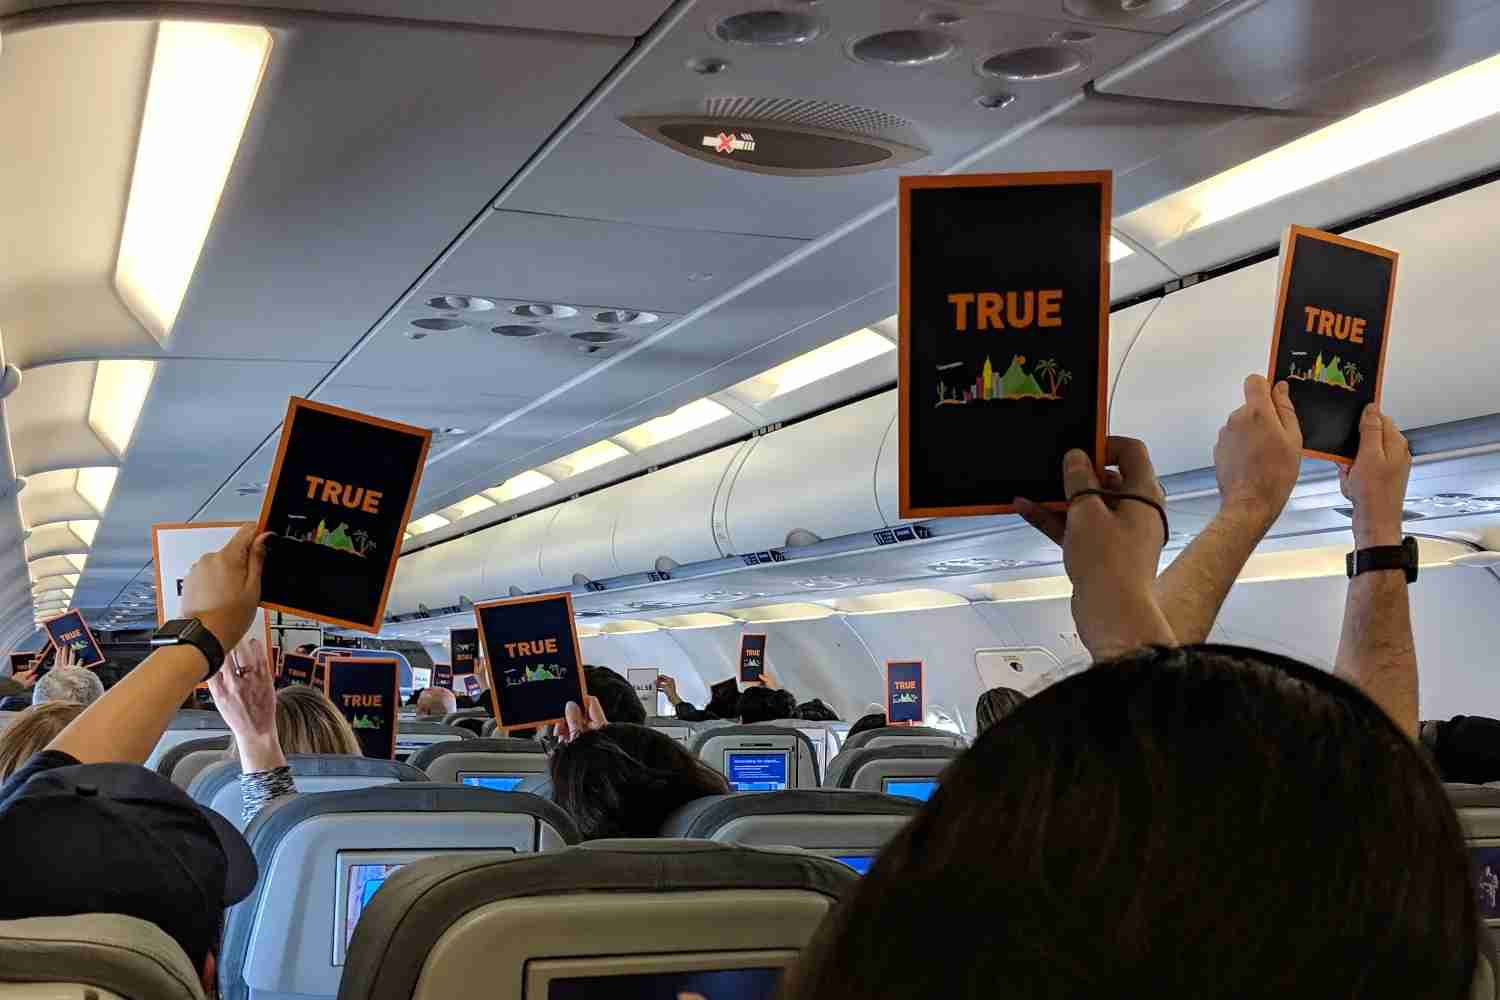 Holding up True / False cards in the onboard trivia game.